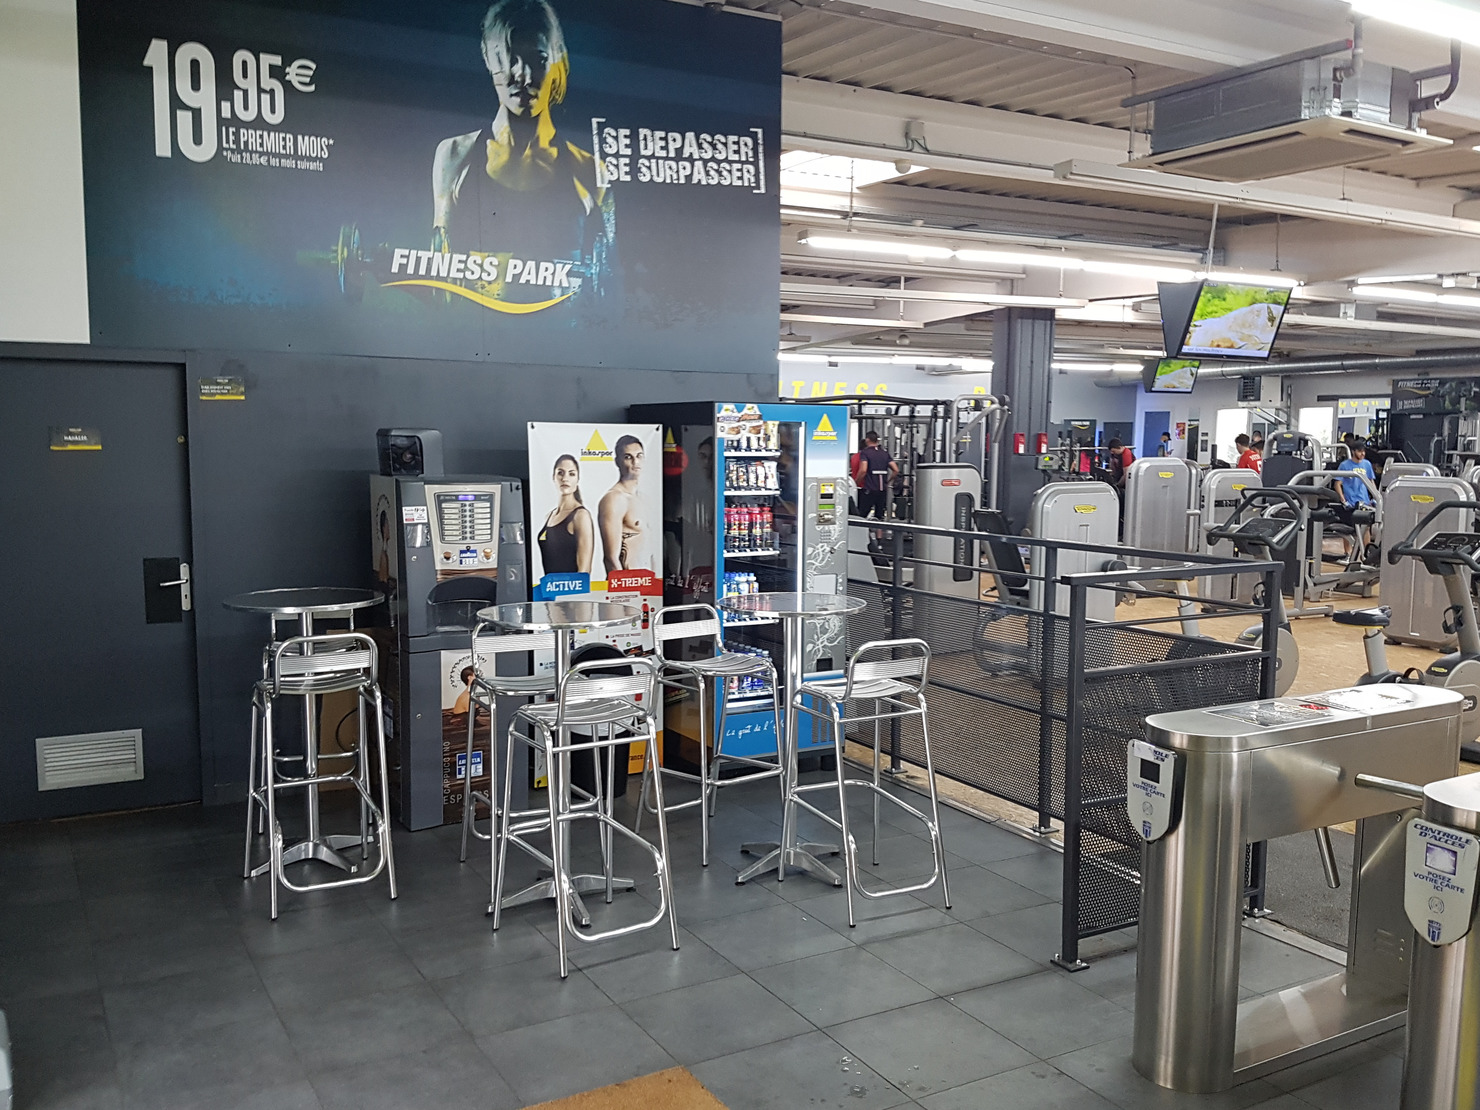 fitness park st etienne villars tarifs avis horaires offre d couverte. Black Bedroom Furniture Sets. Home Design Ideas